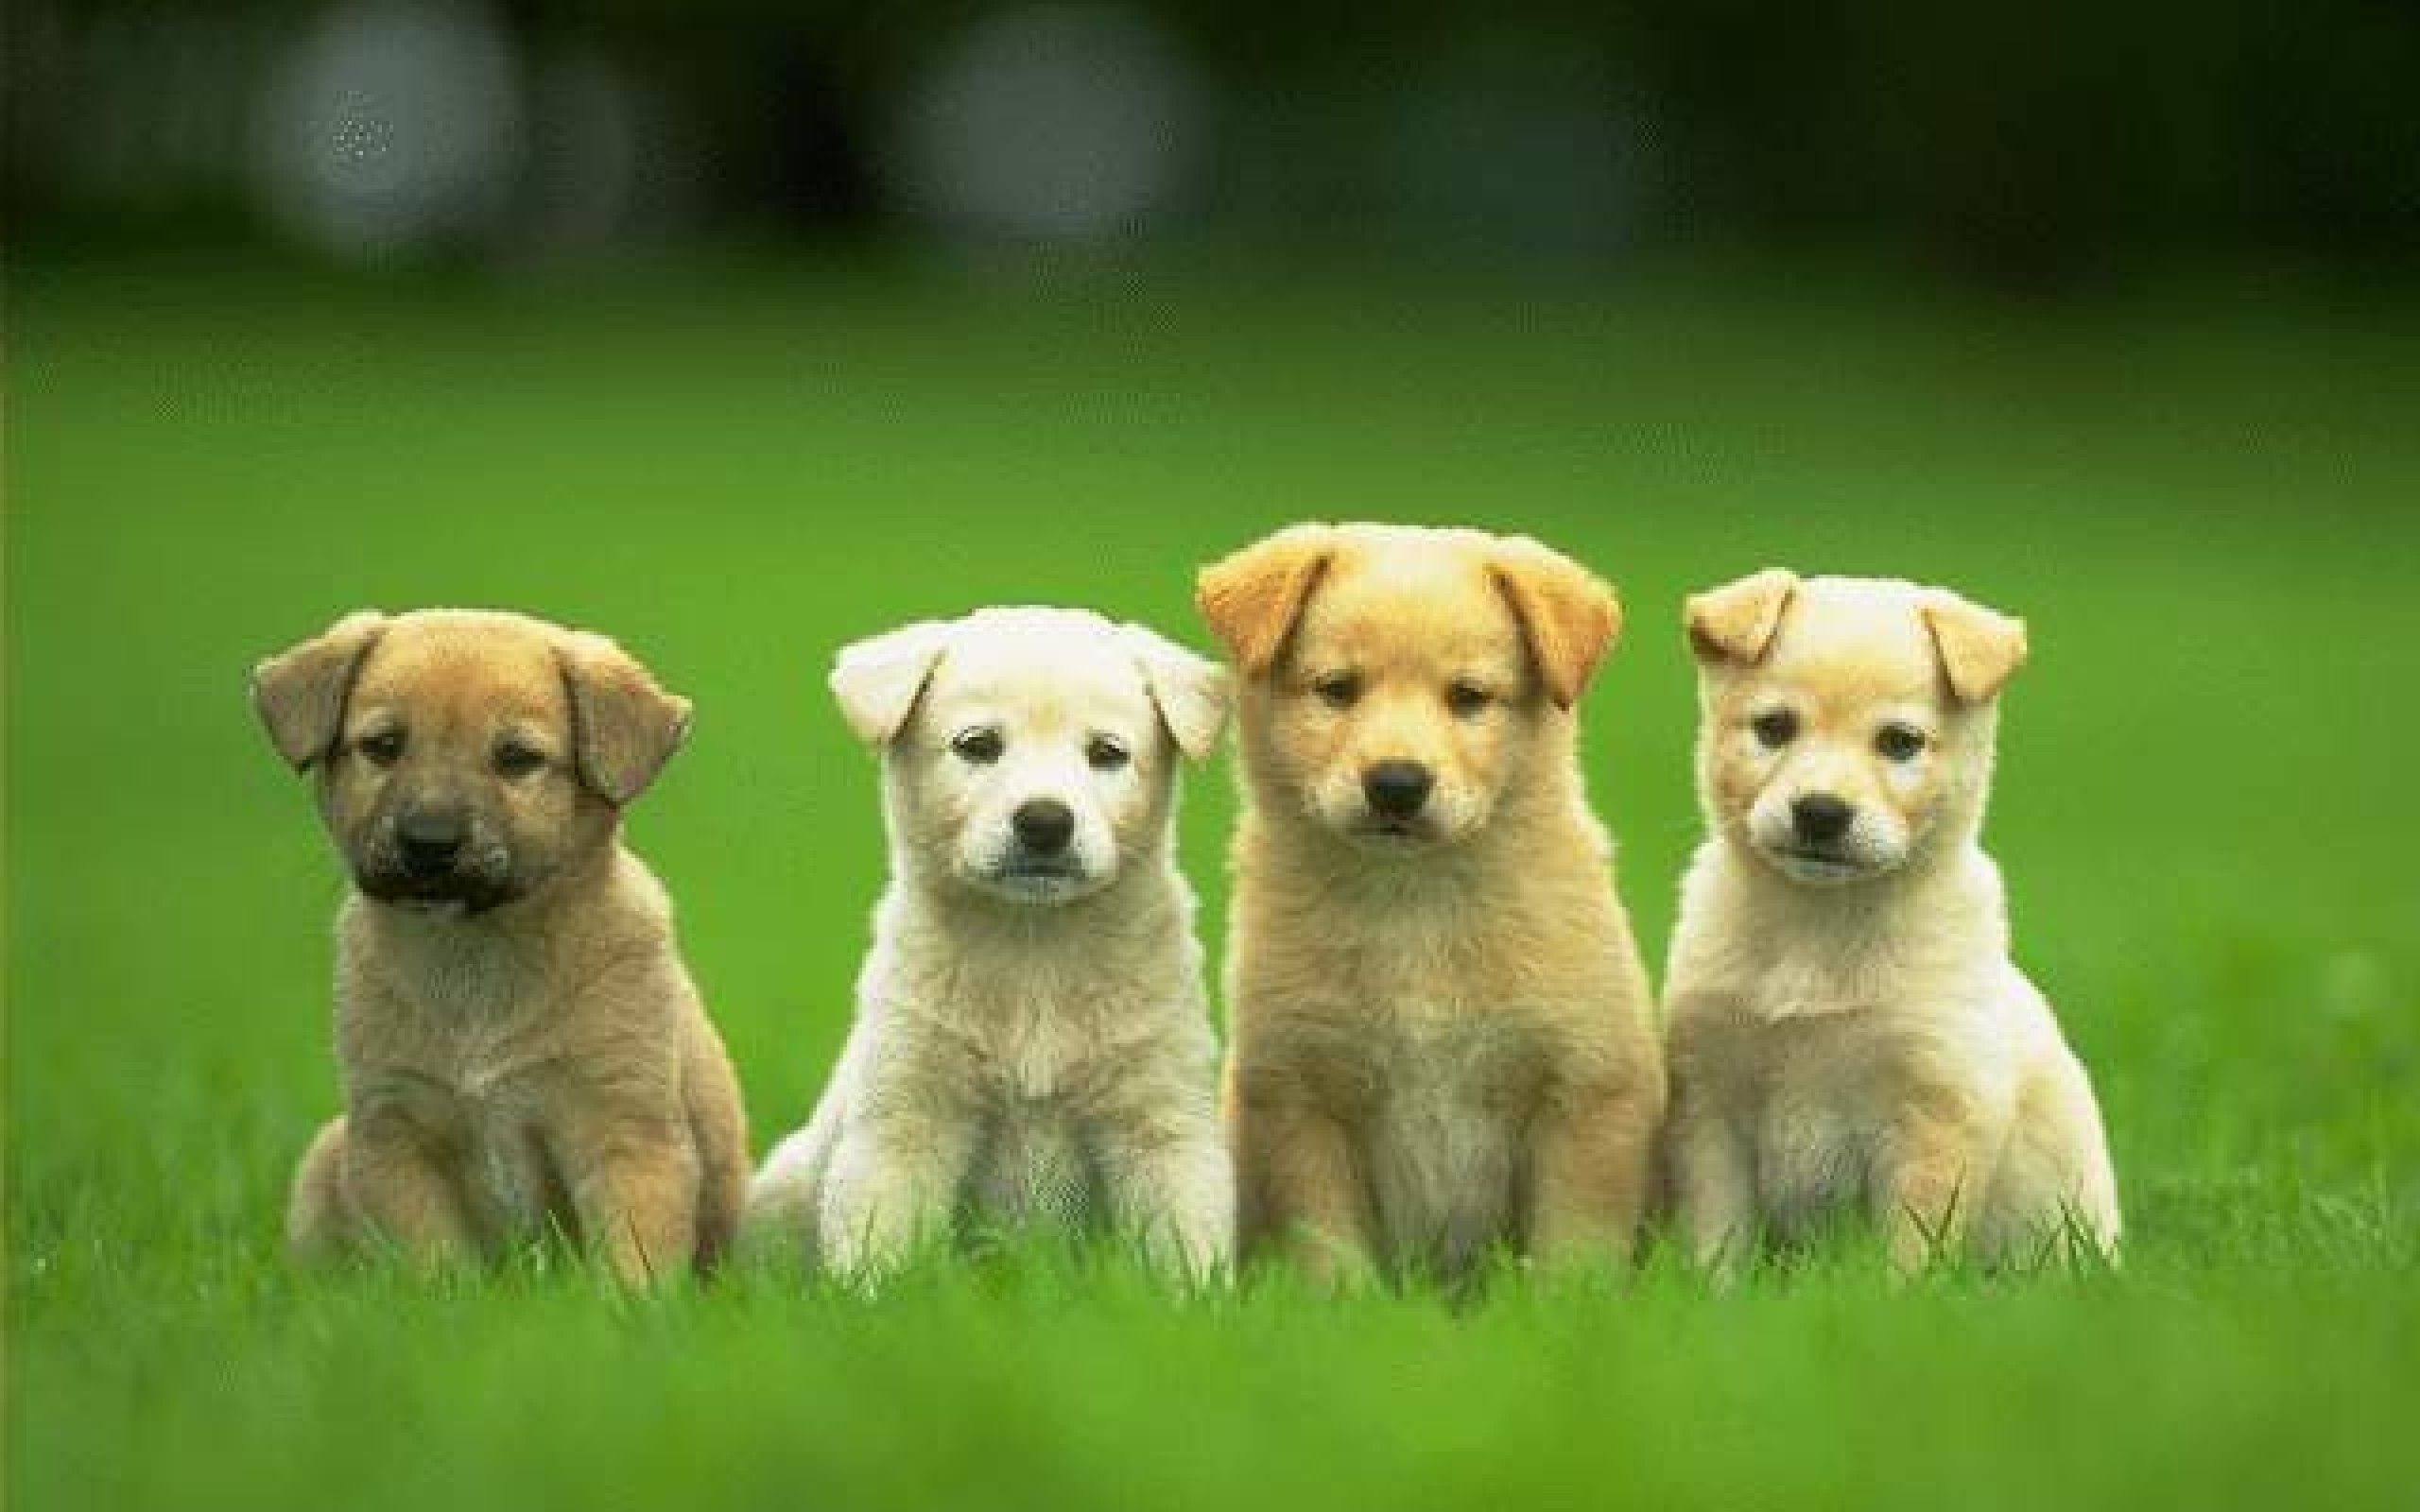 dog wallpapers collection for free download   hd wallpapers